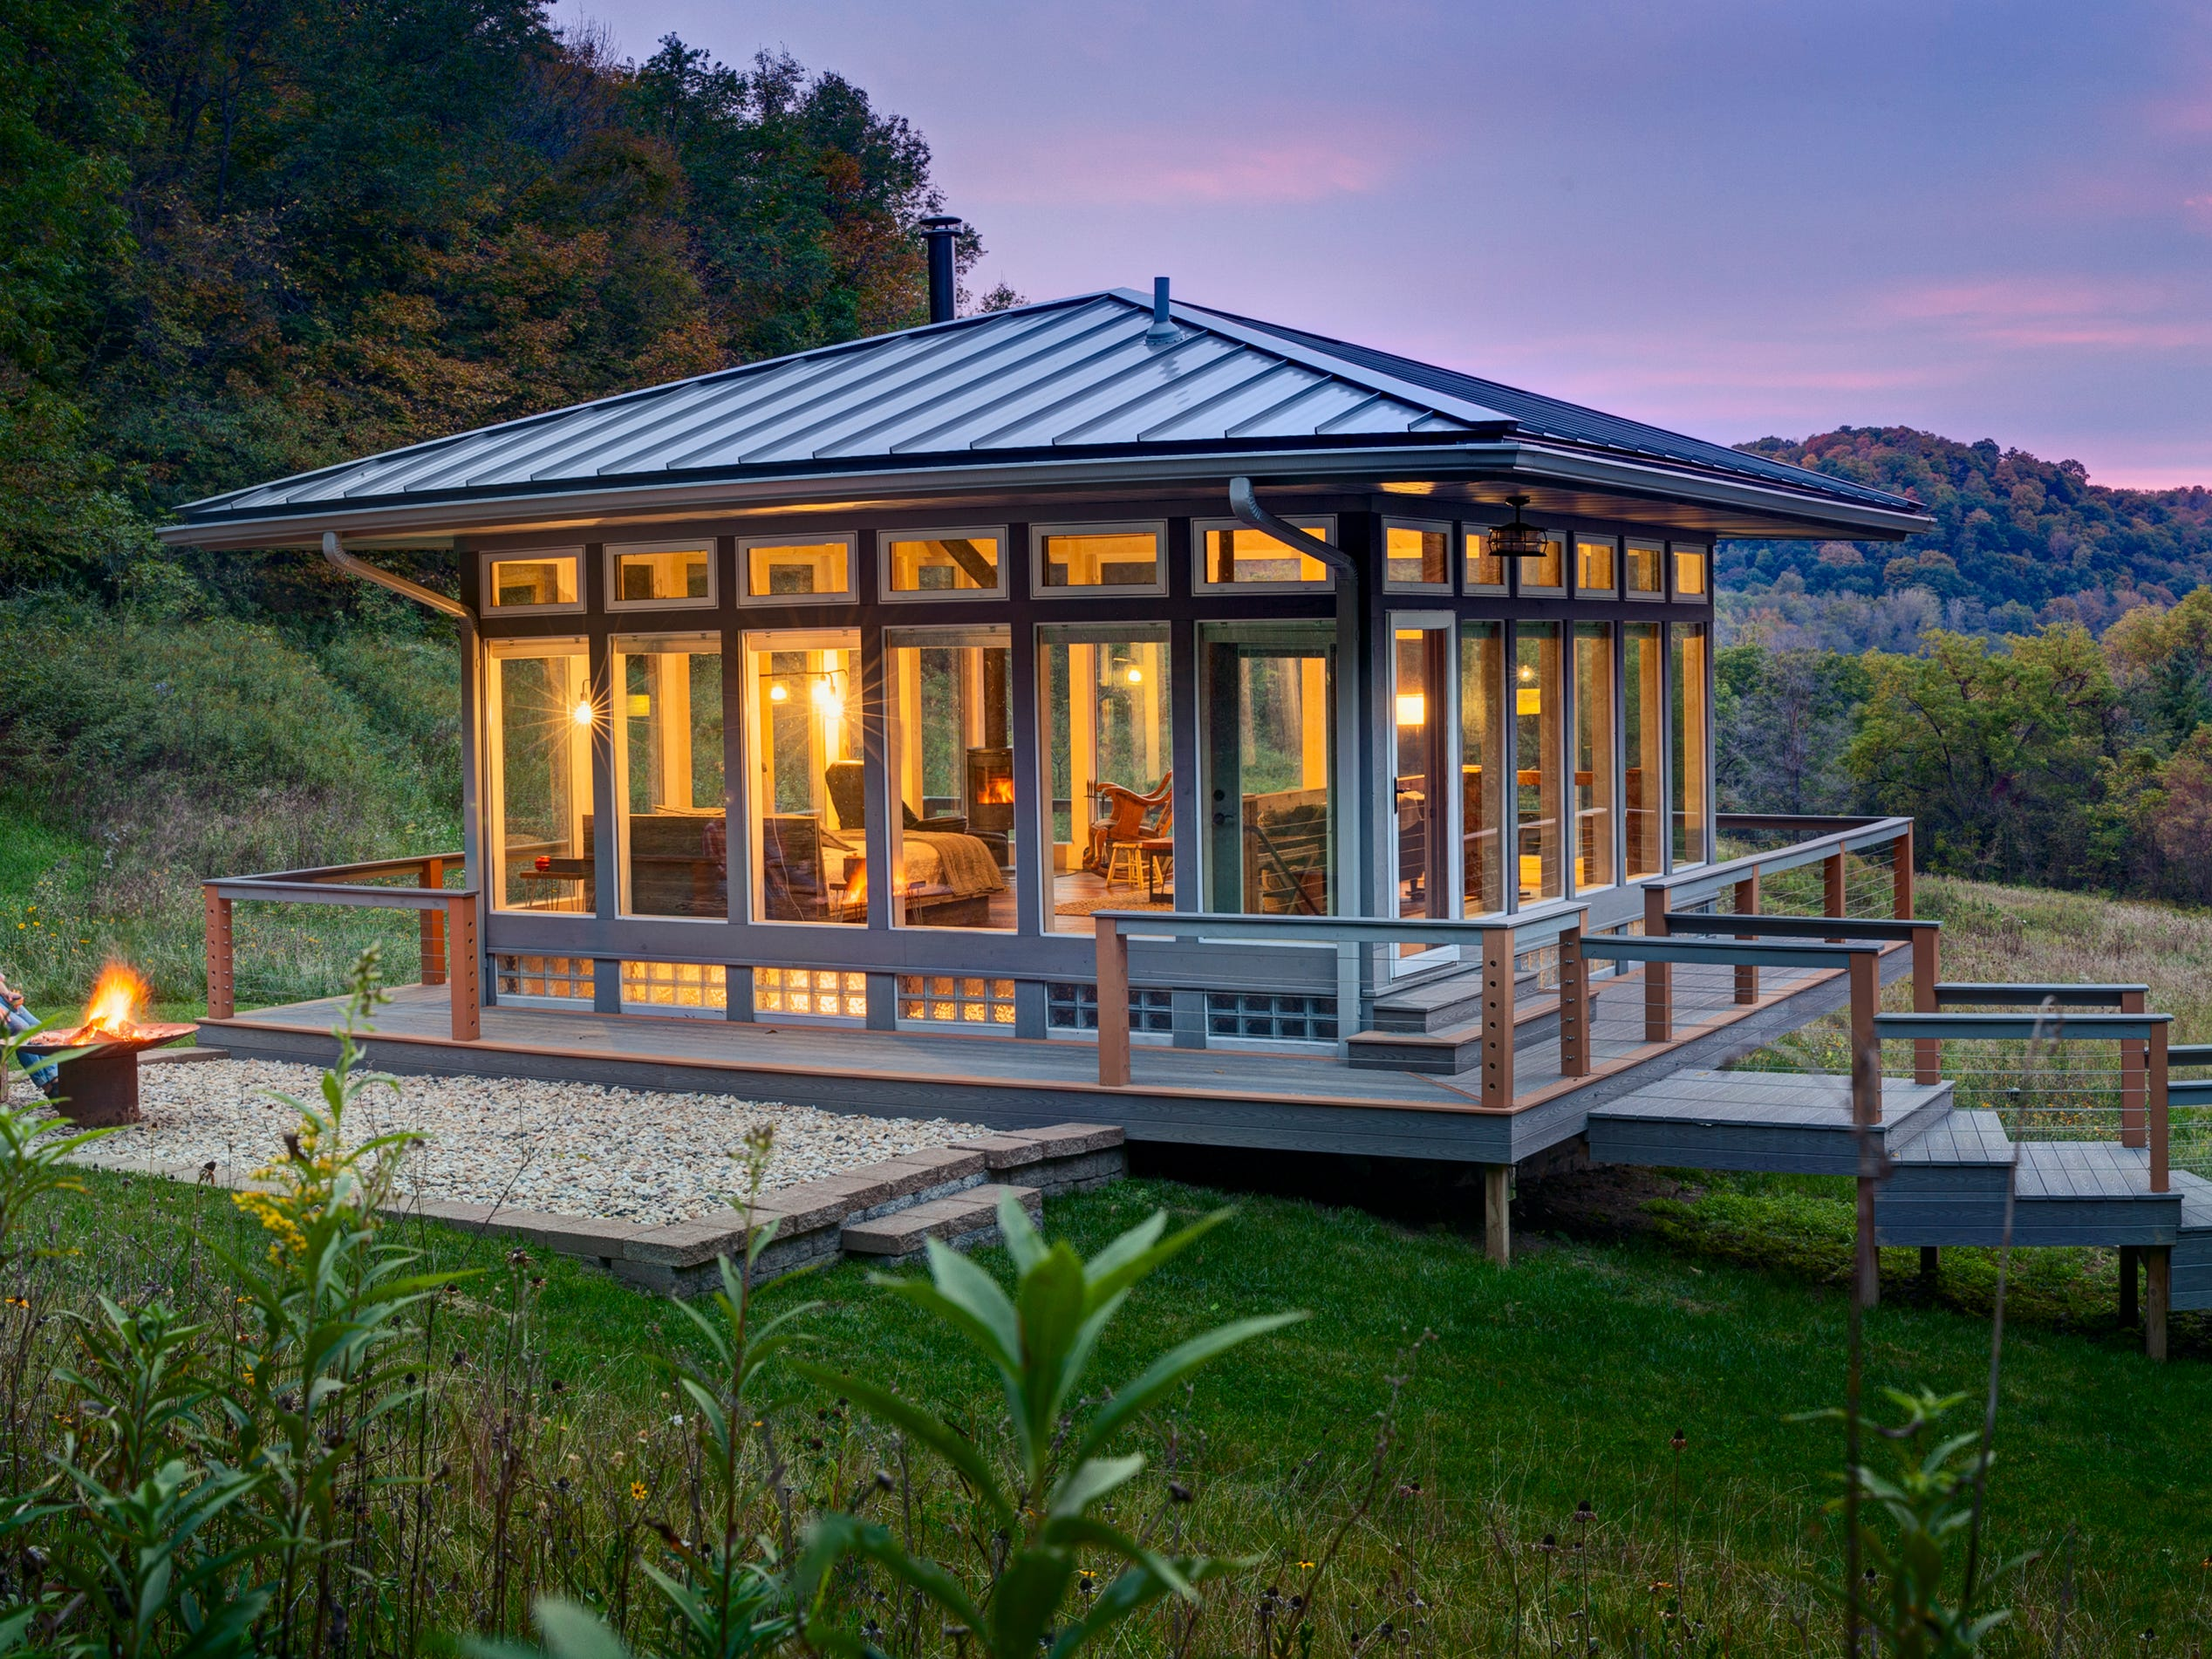 The Meadow House at Candlewood Cabins features four walls of glass panels for taking in views of the surrounding Driftless Area hills. A fire pit provides a spot for enjoying those views outside.